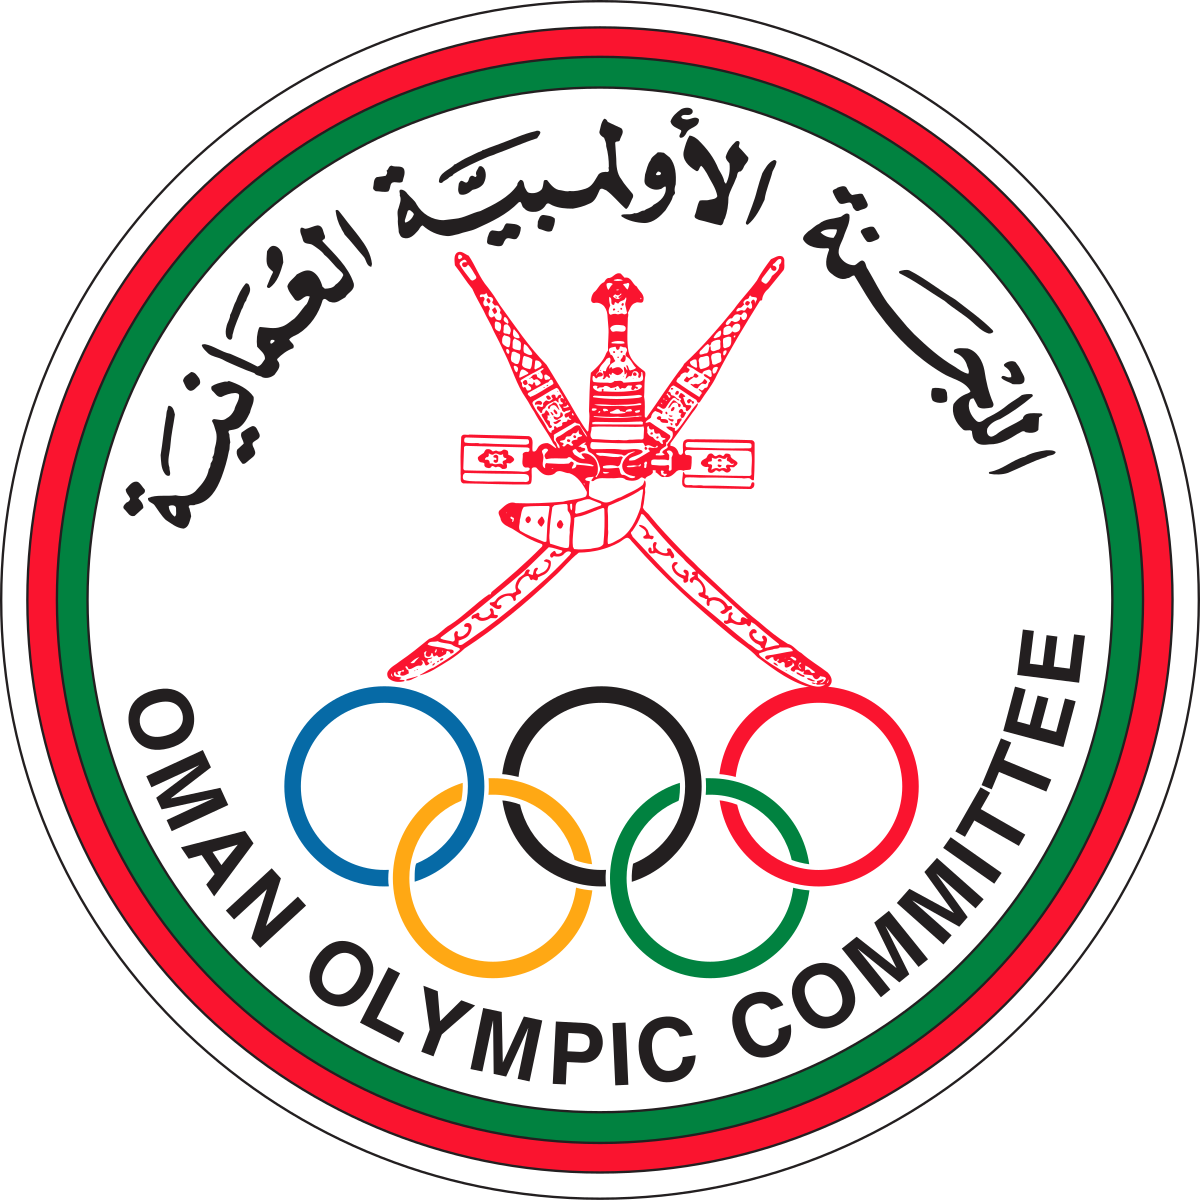 Oman Olympic Committee hold finance course for officials